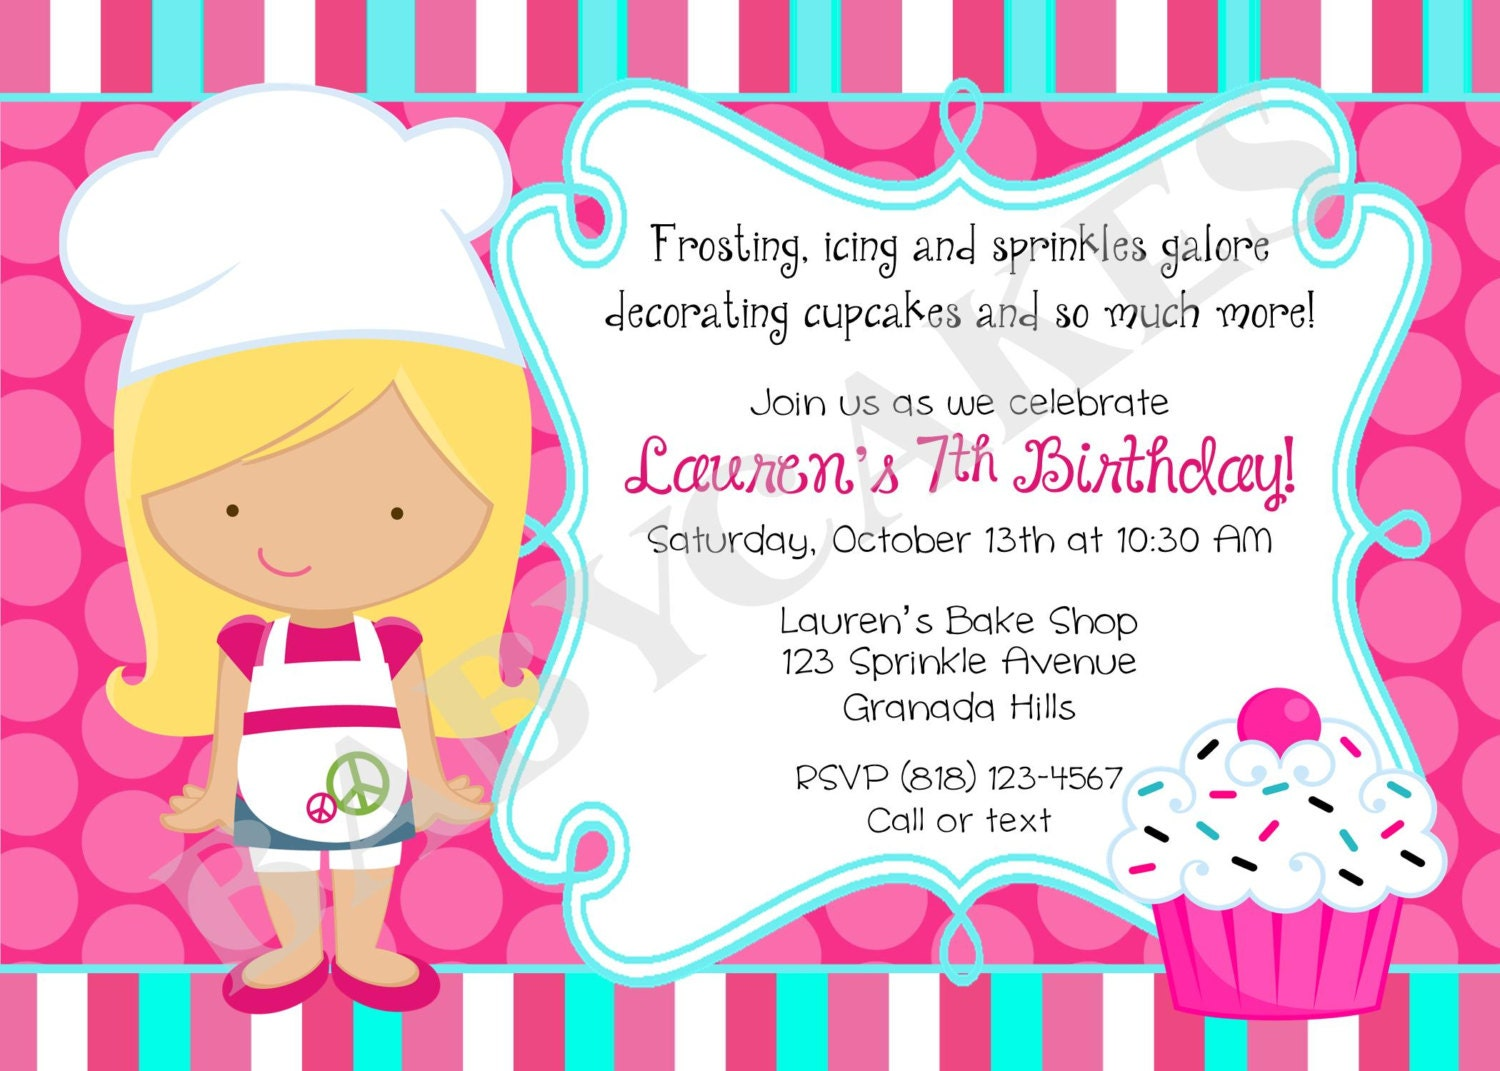 Cupcake / Decorating /birthday /Party /Invitation by jcbabycakes